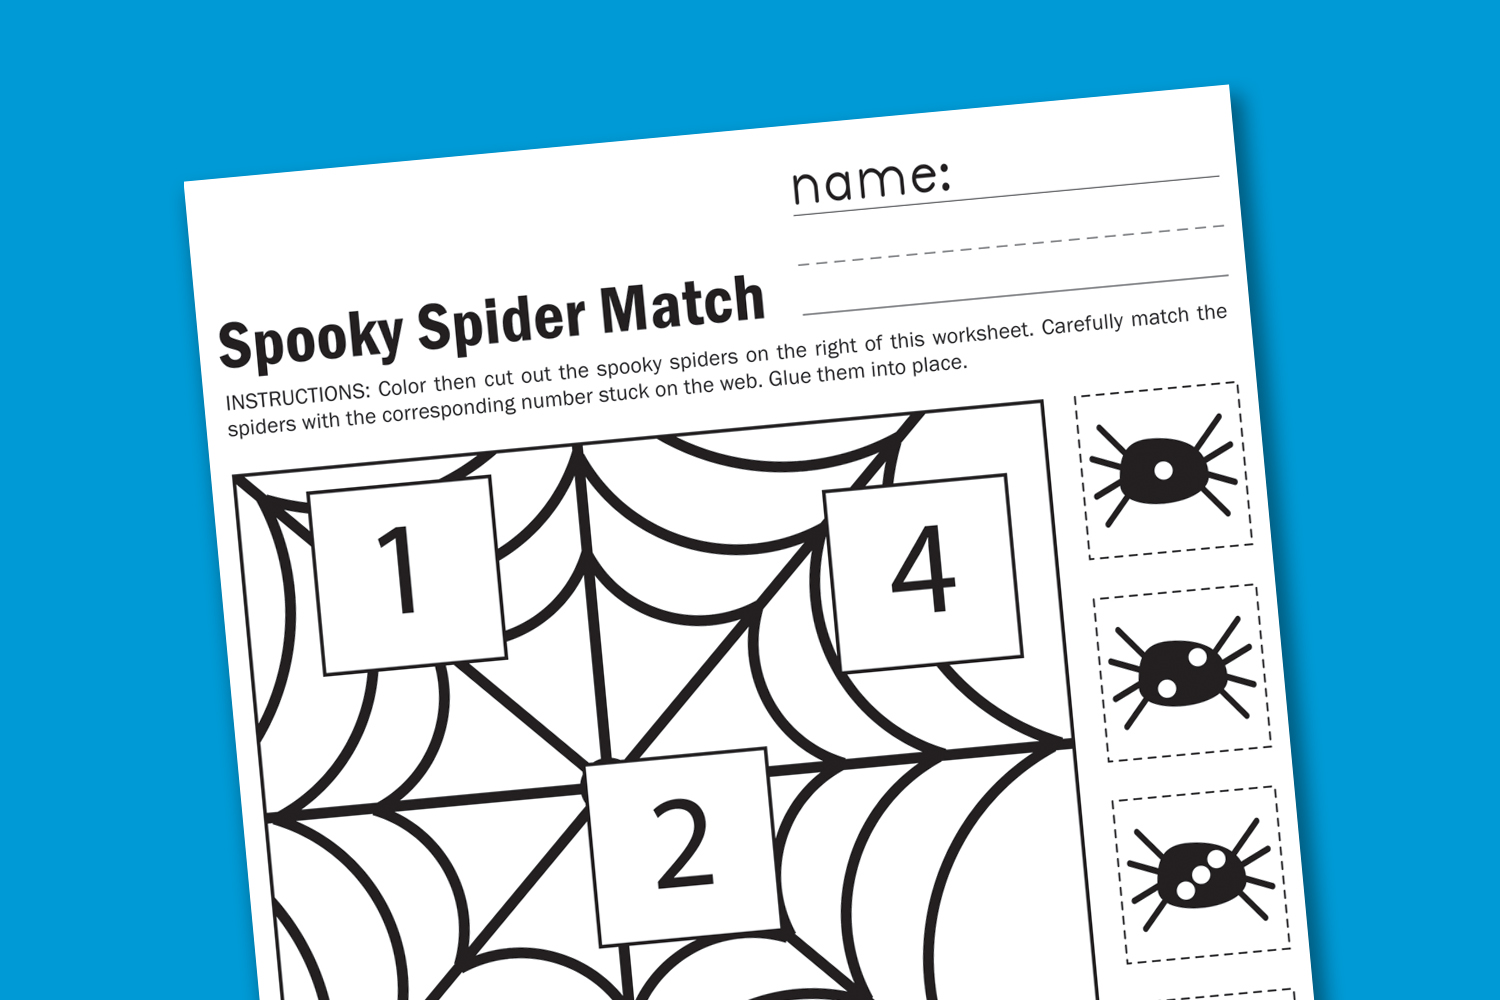 Spooky Spider Match Worksheet